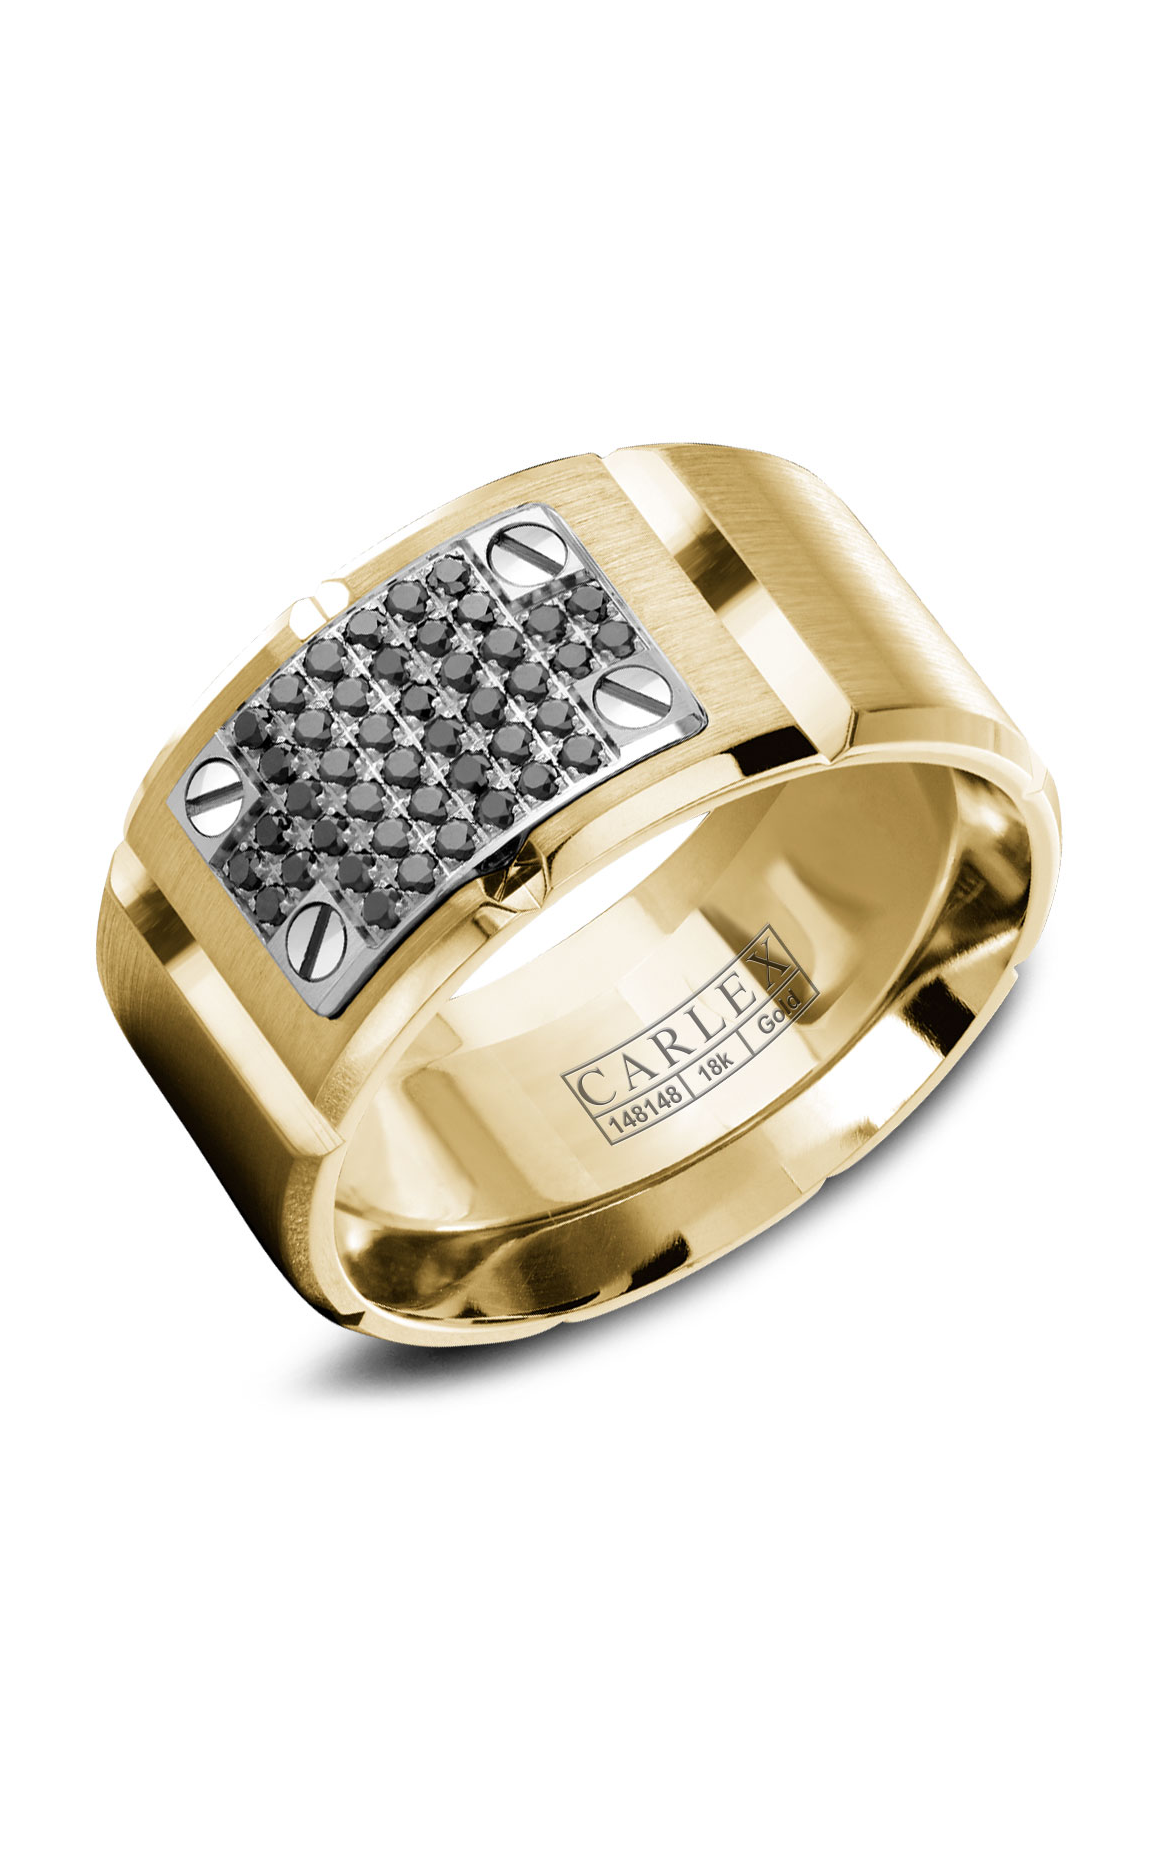 Carlex G2 Men's Wedding Band WB-9798WYBD product image